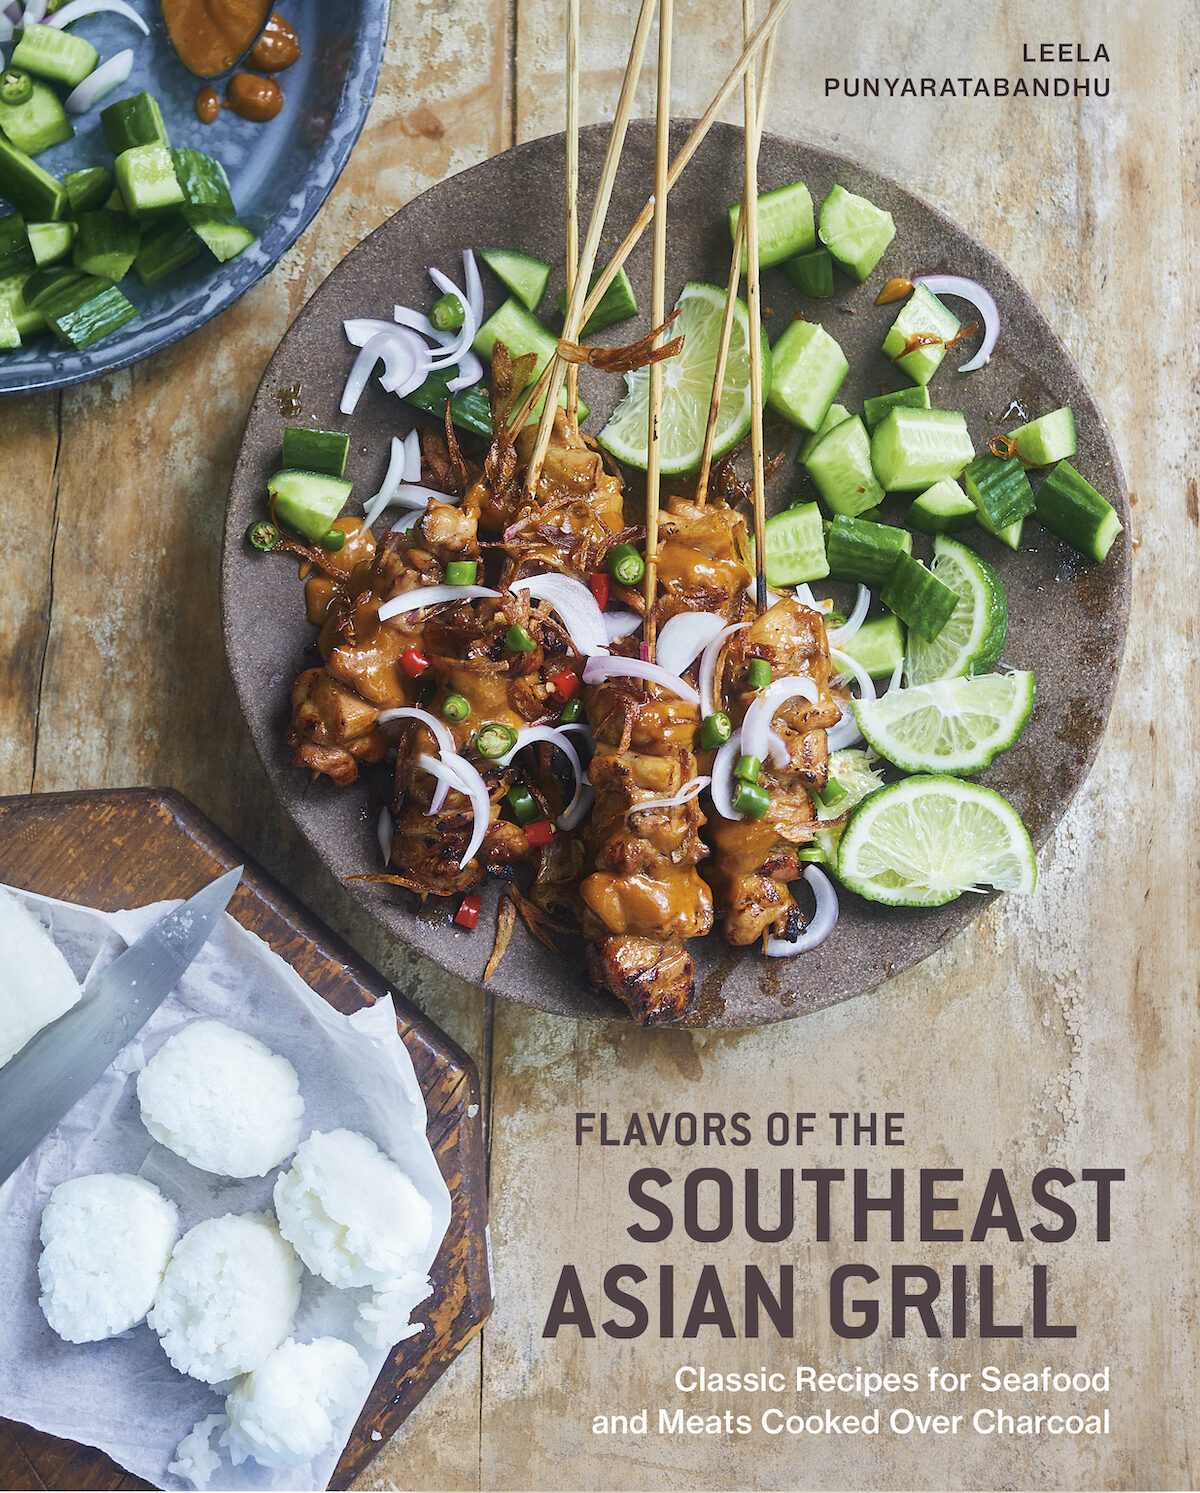 Flavors of the Southeast Asian Grill book cover